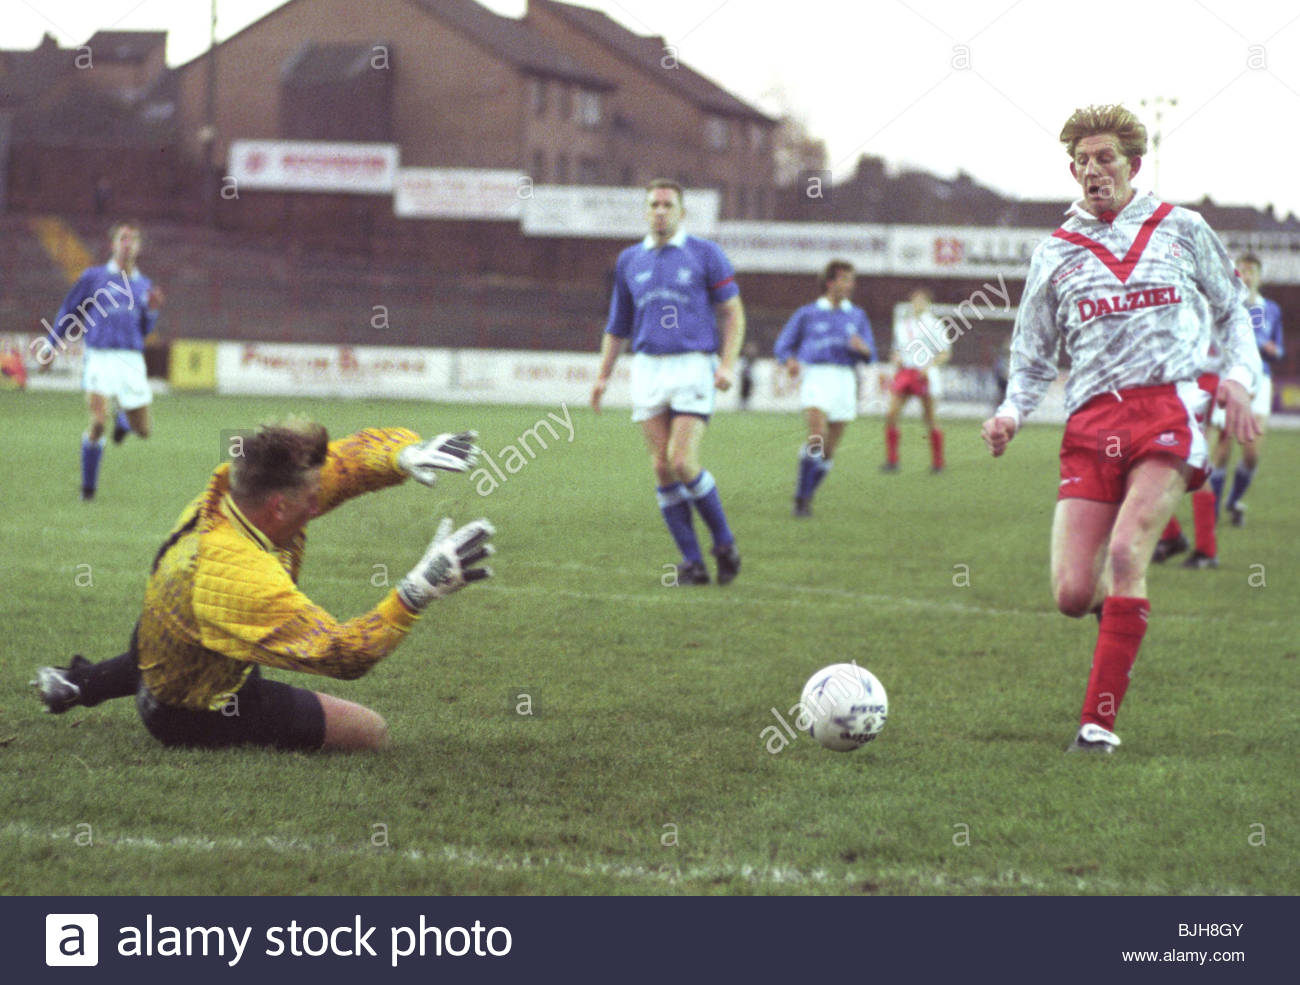 14/11/92 SCOTTISH PREMIER DIVISION AIRDRIE v ST JOHNSTONE (0-2) BROOMFIELD - AIRDRIE Airdrie striker Andy Smith - Stock Image